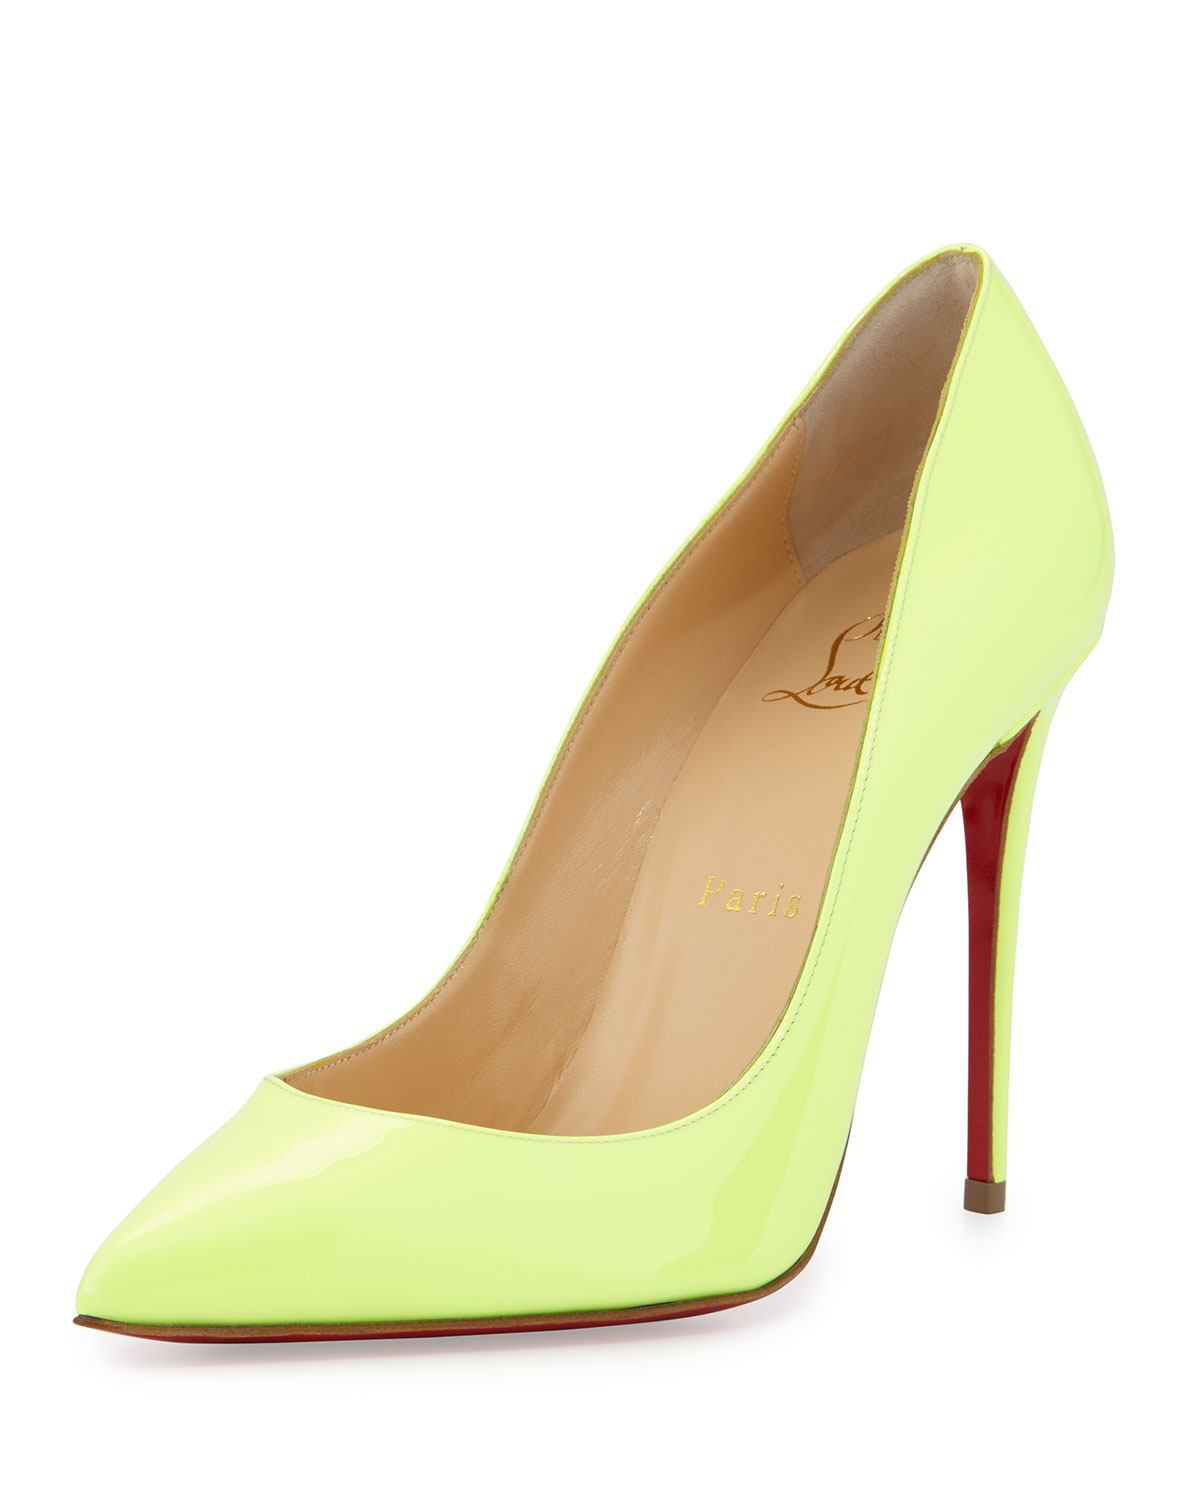 Christian Louboutin Pigalle Follies Patent 100mm Red Sole Pump, Neon, Women's, Size: 42.0B/12.0B